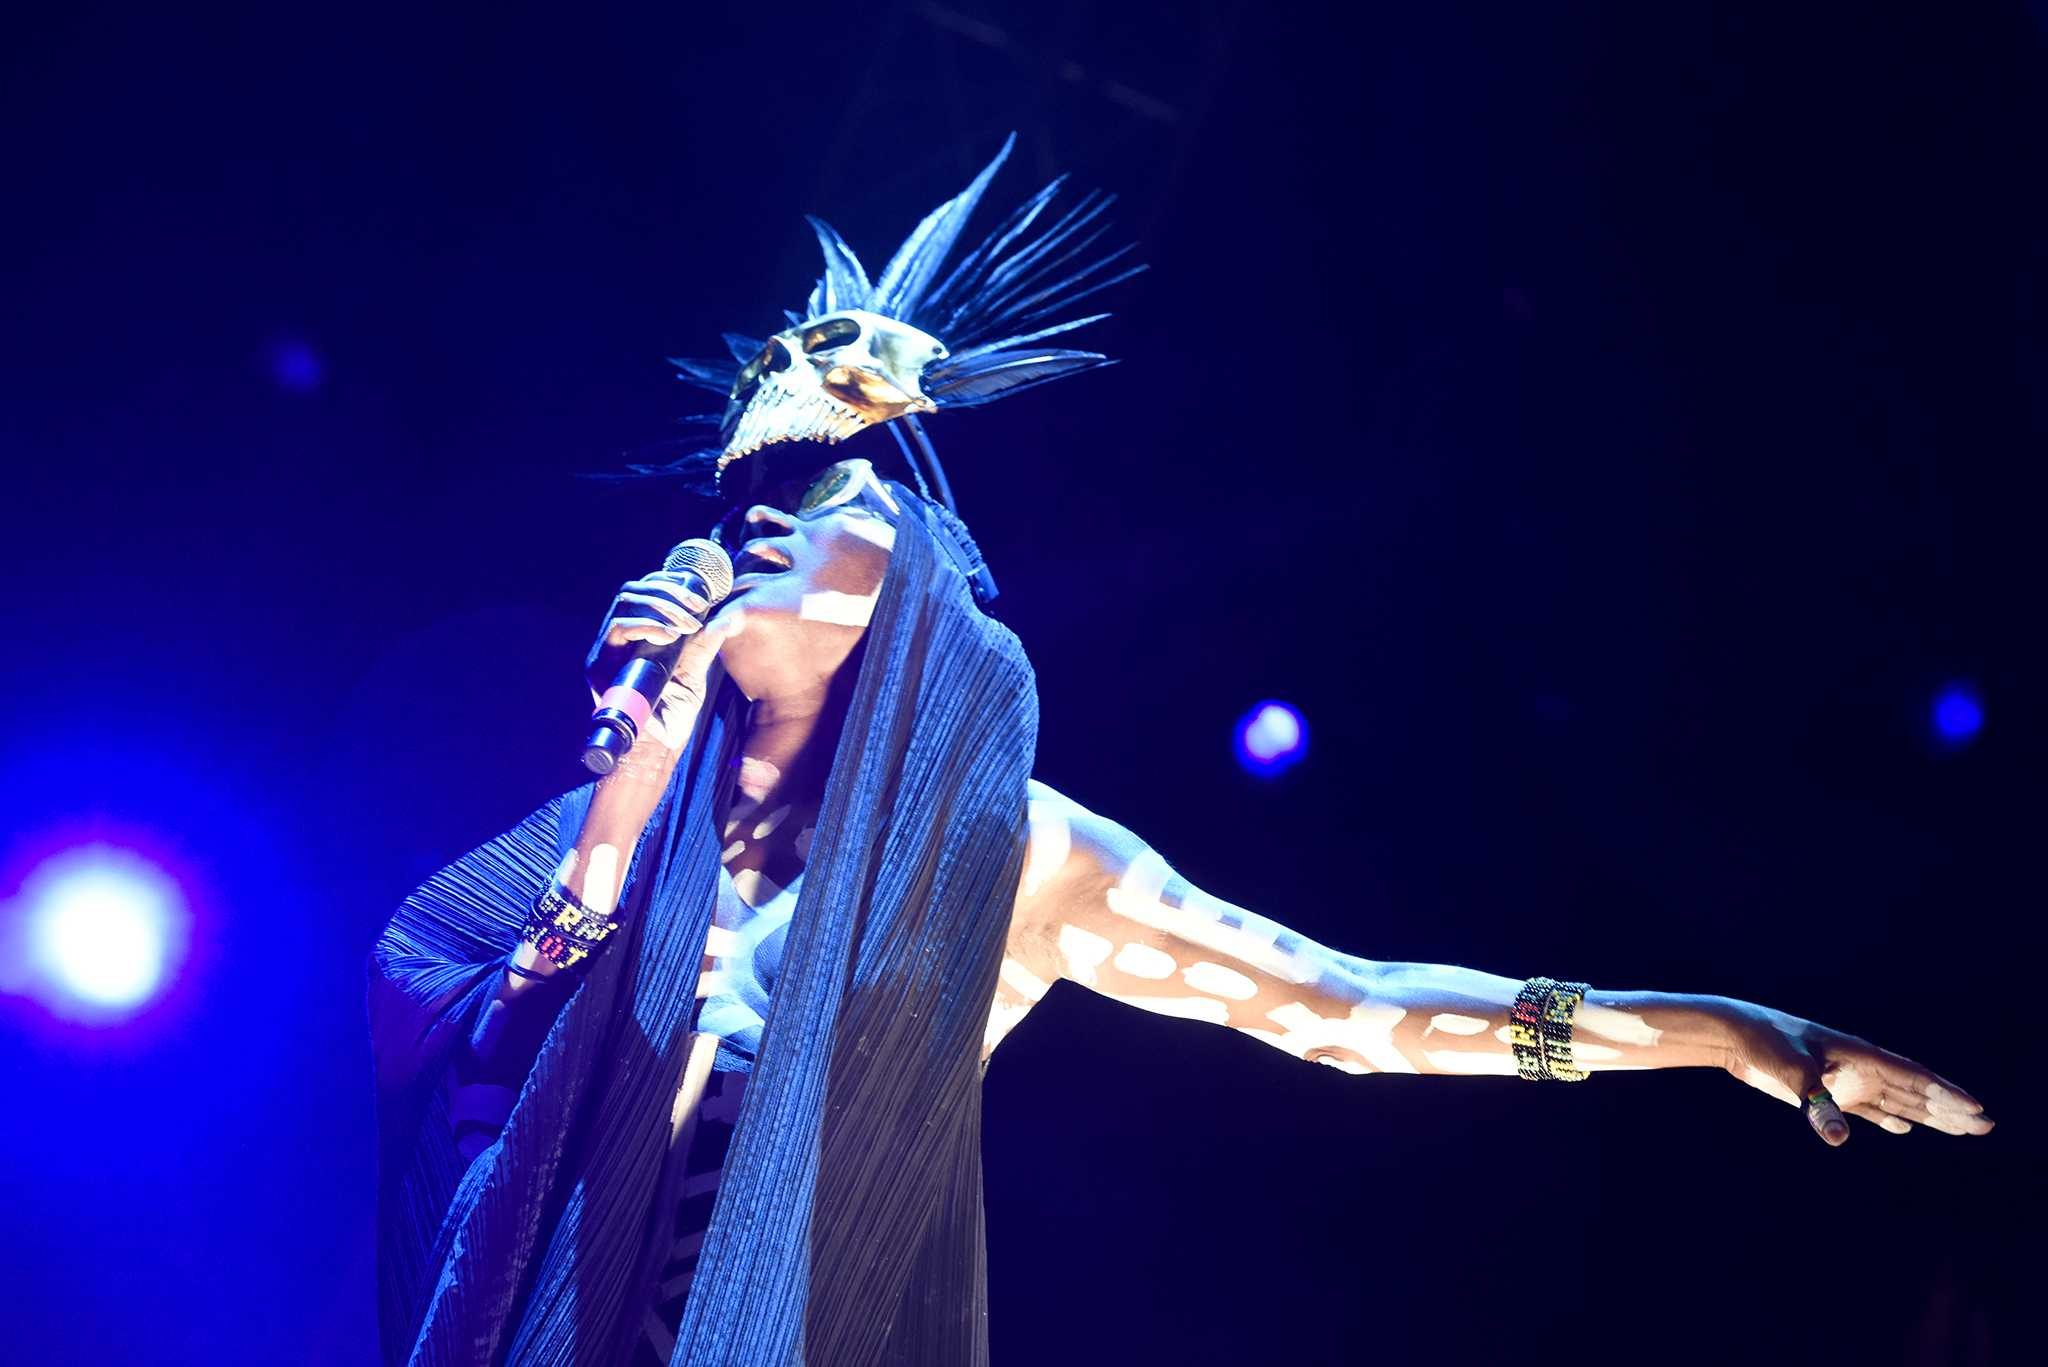 Grace Jones at Main Stage by Everett Fitzpatrick for FYF Fest